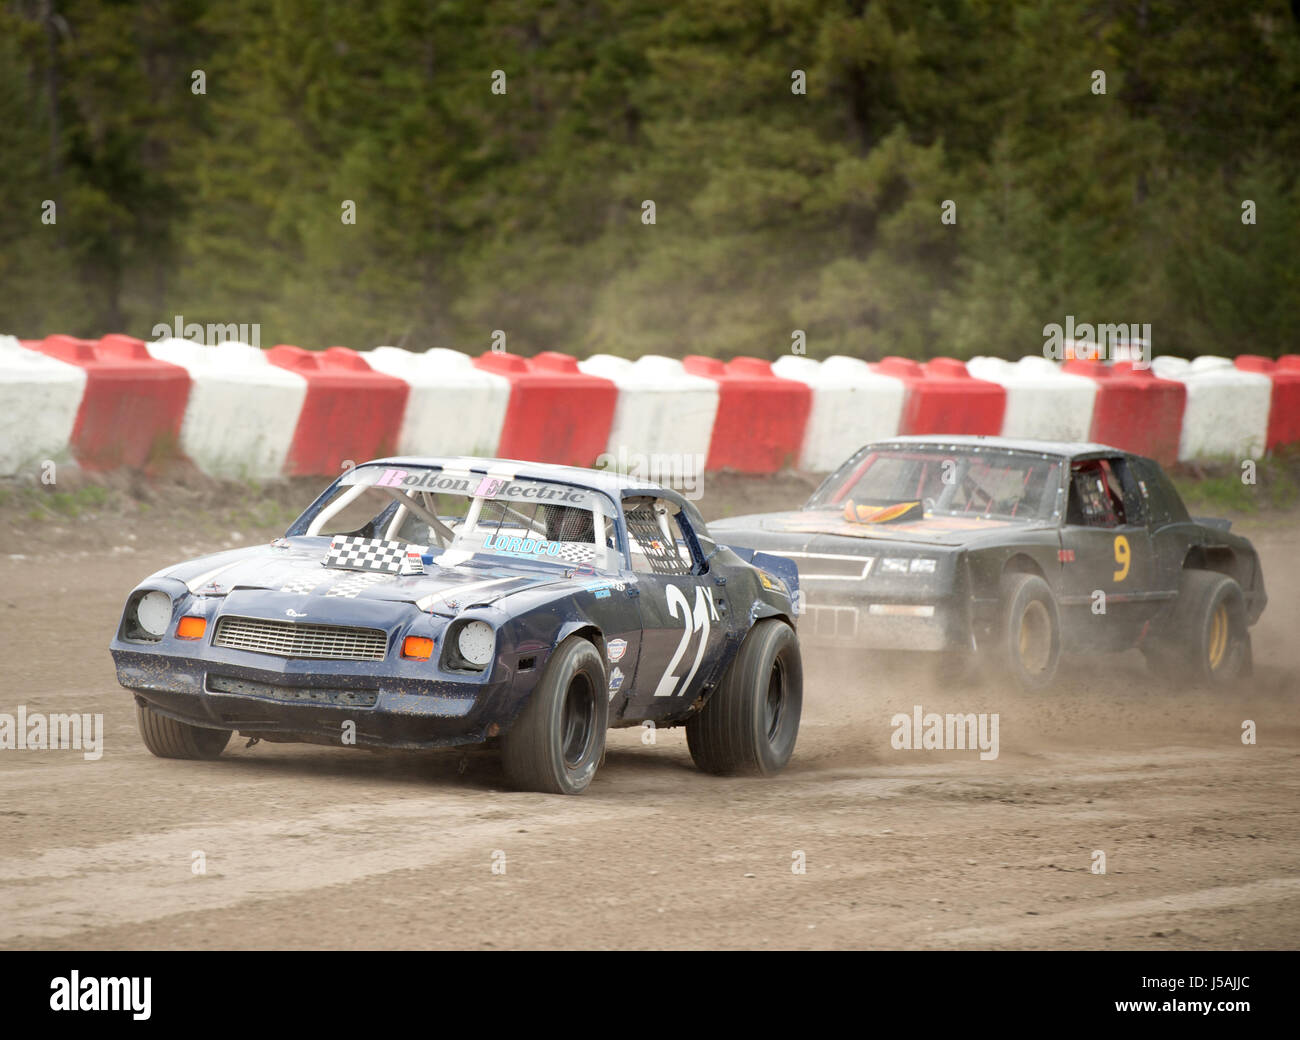 Small Town Dirt Track Stock Car Racing Home Made Race Cars On A Stock Photo Alamy